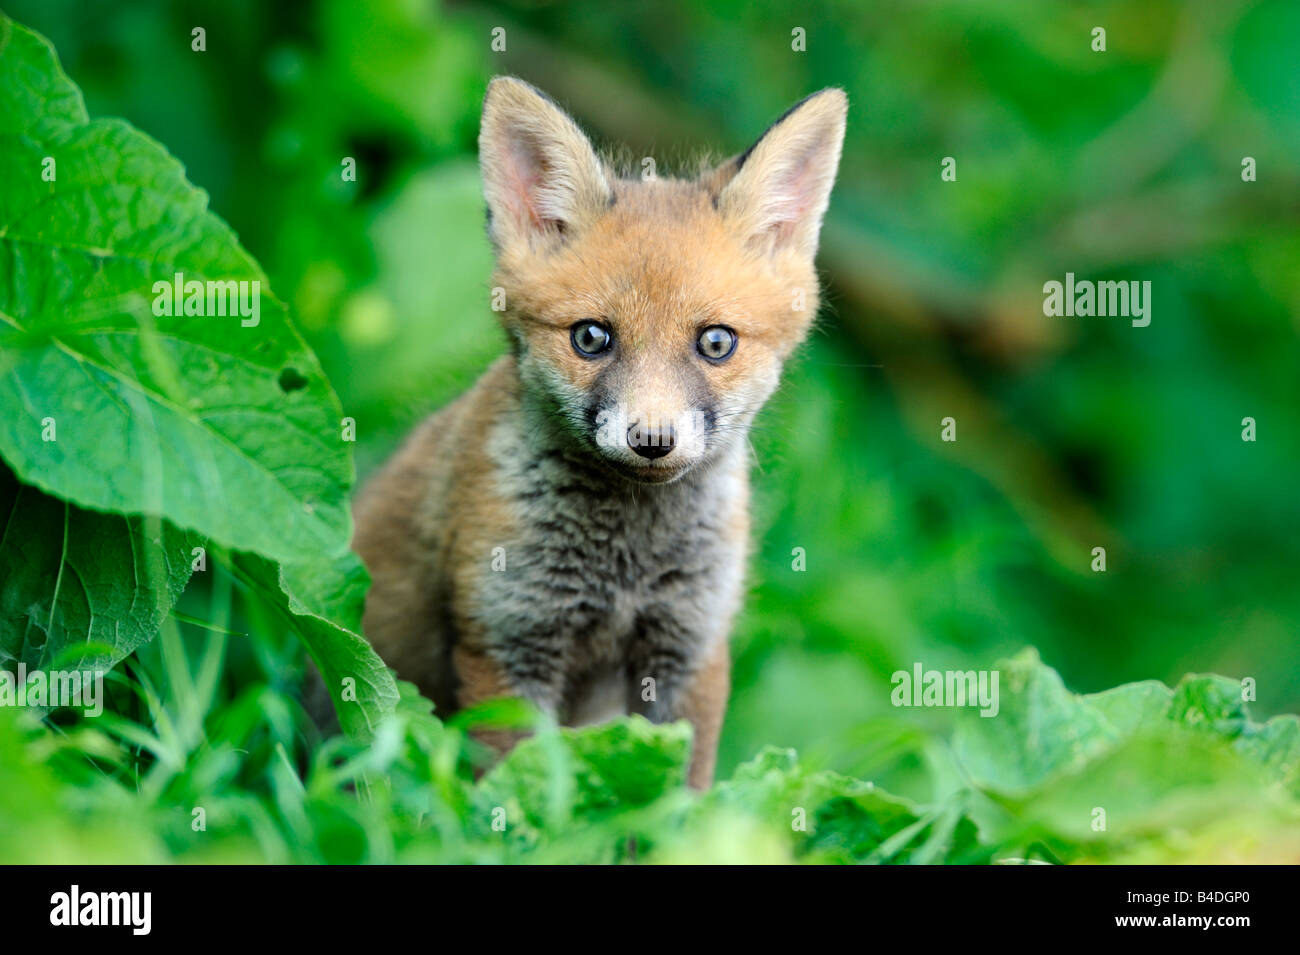 Renard roux cub Photo Stock